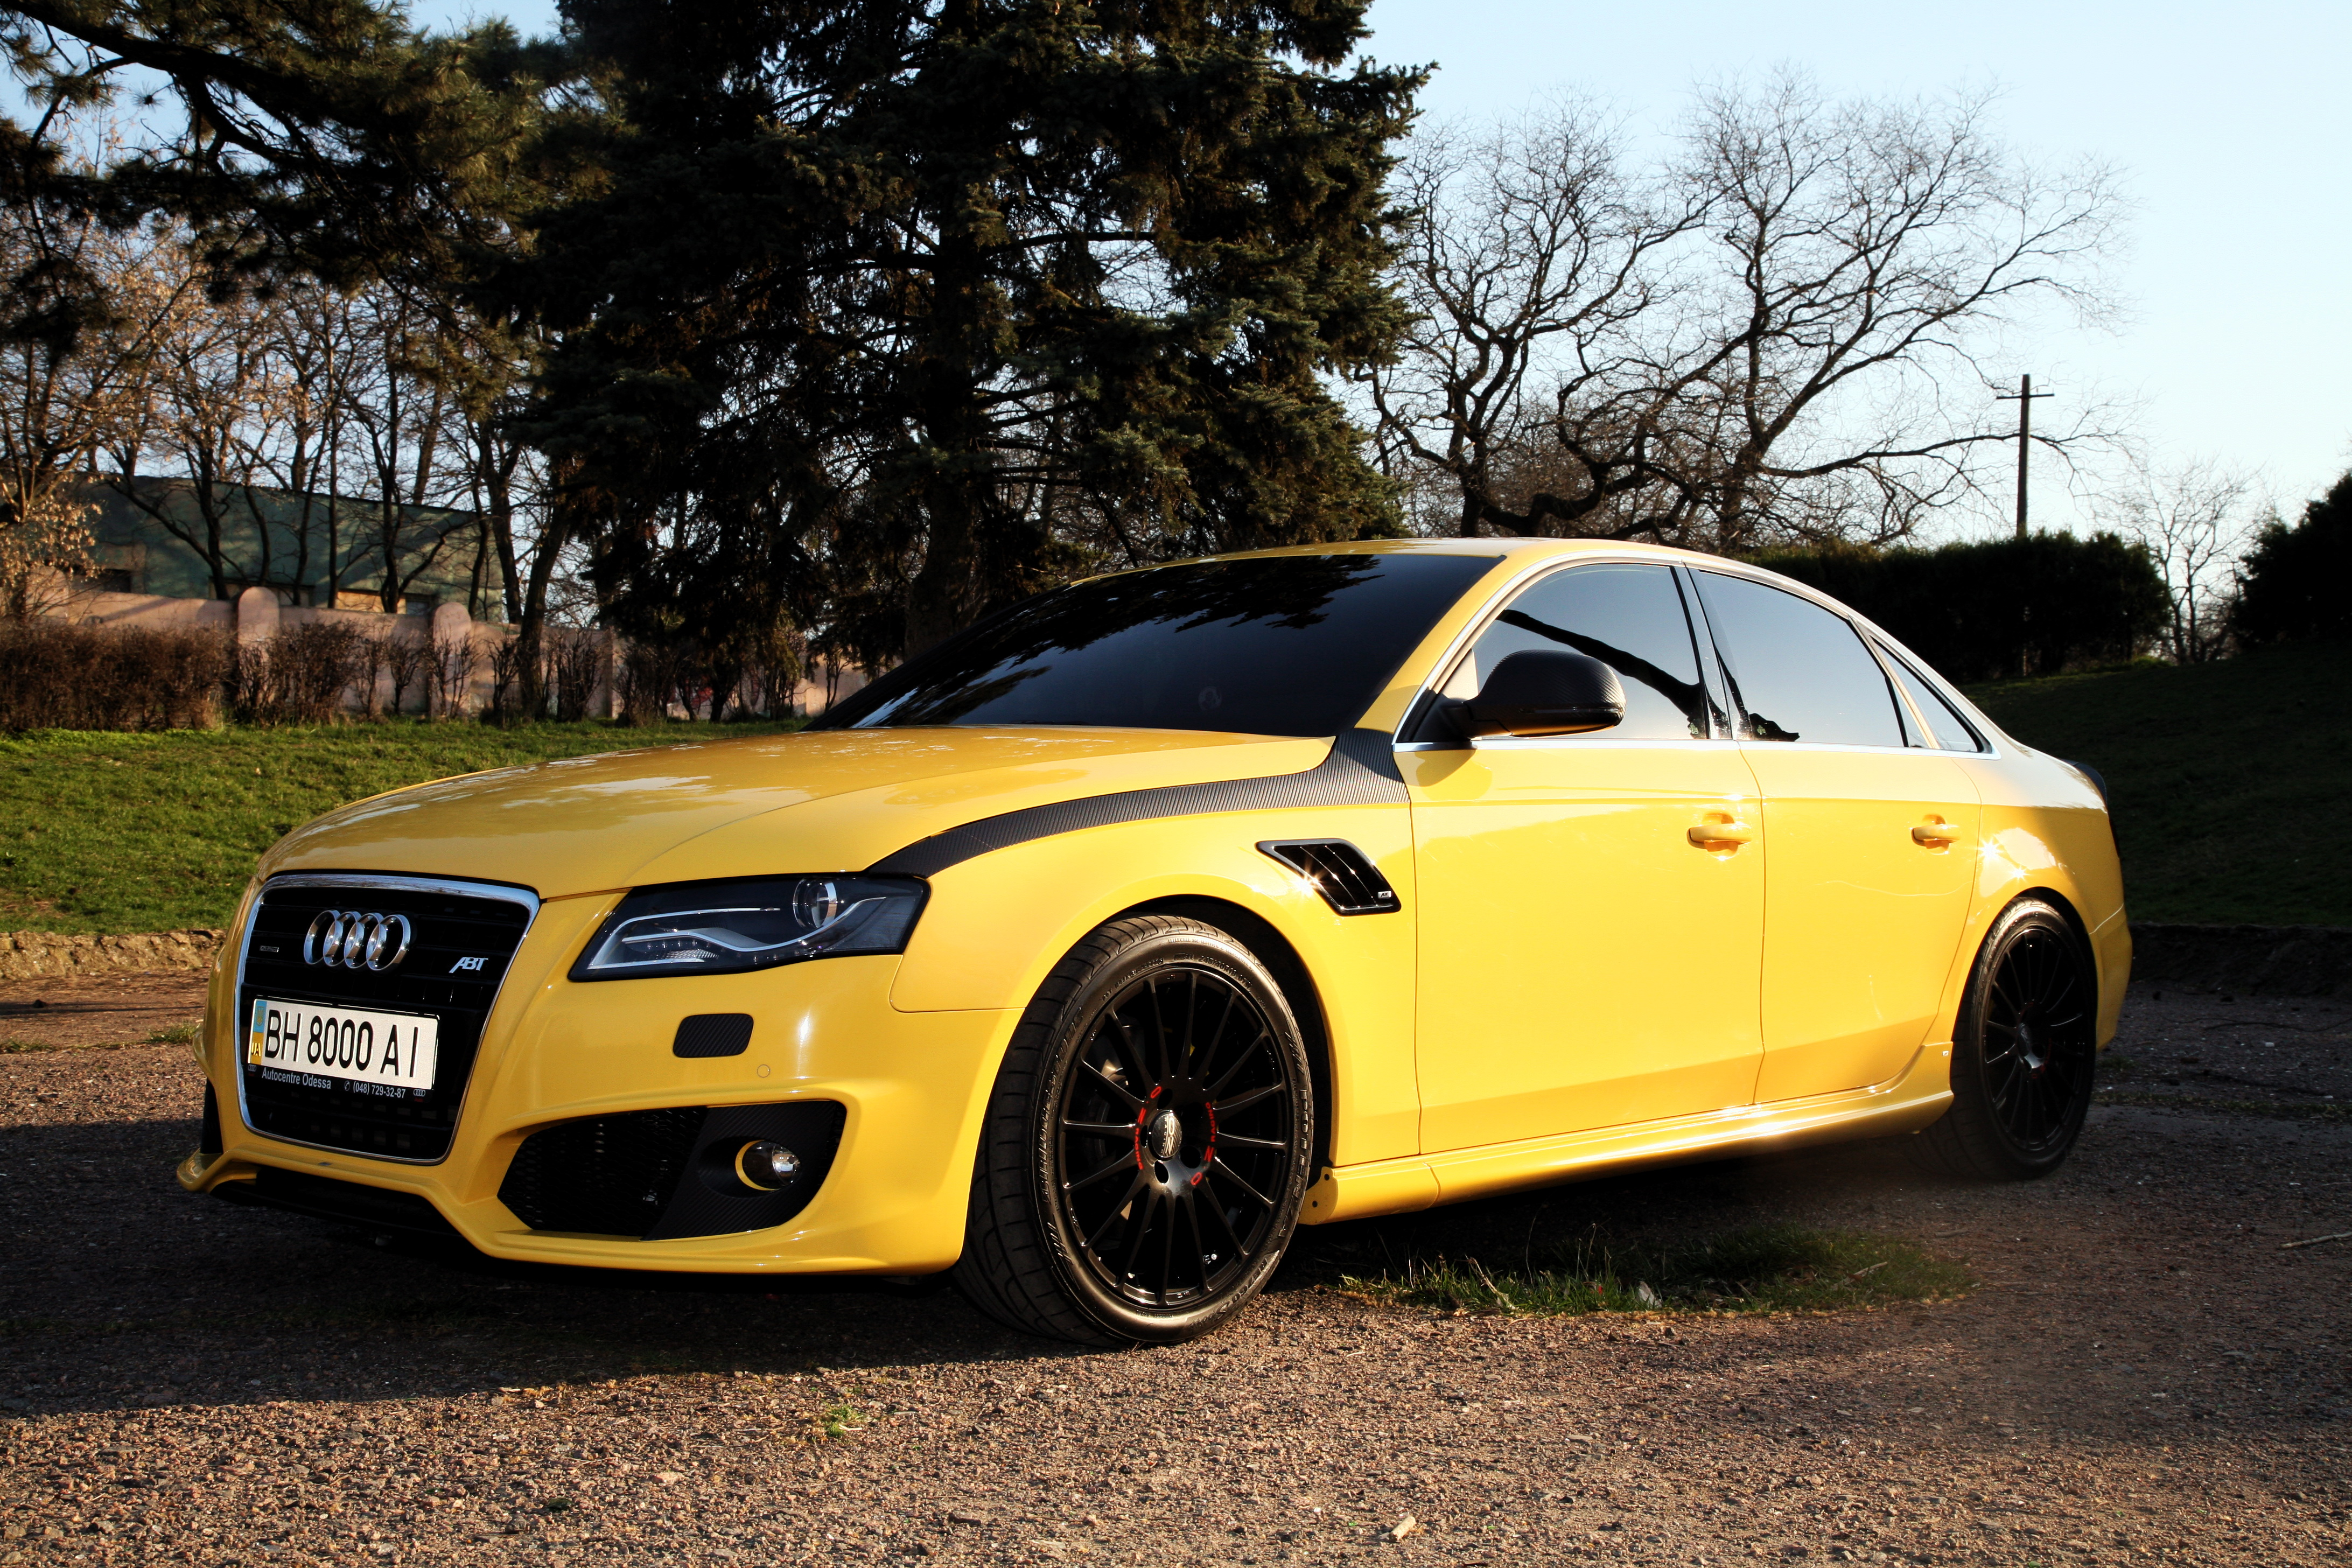 Fantastyczny My perfect Audi A4. 3DTuning - probably the best car configurator! JQ13